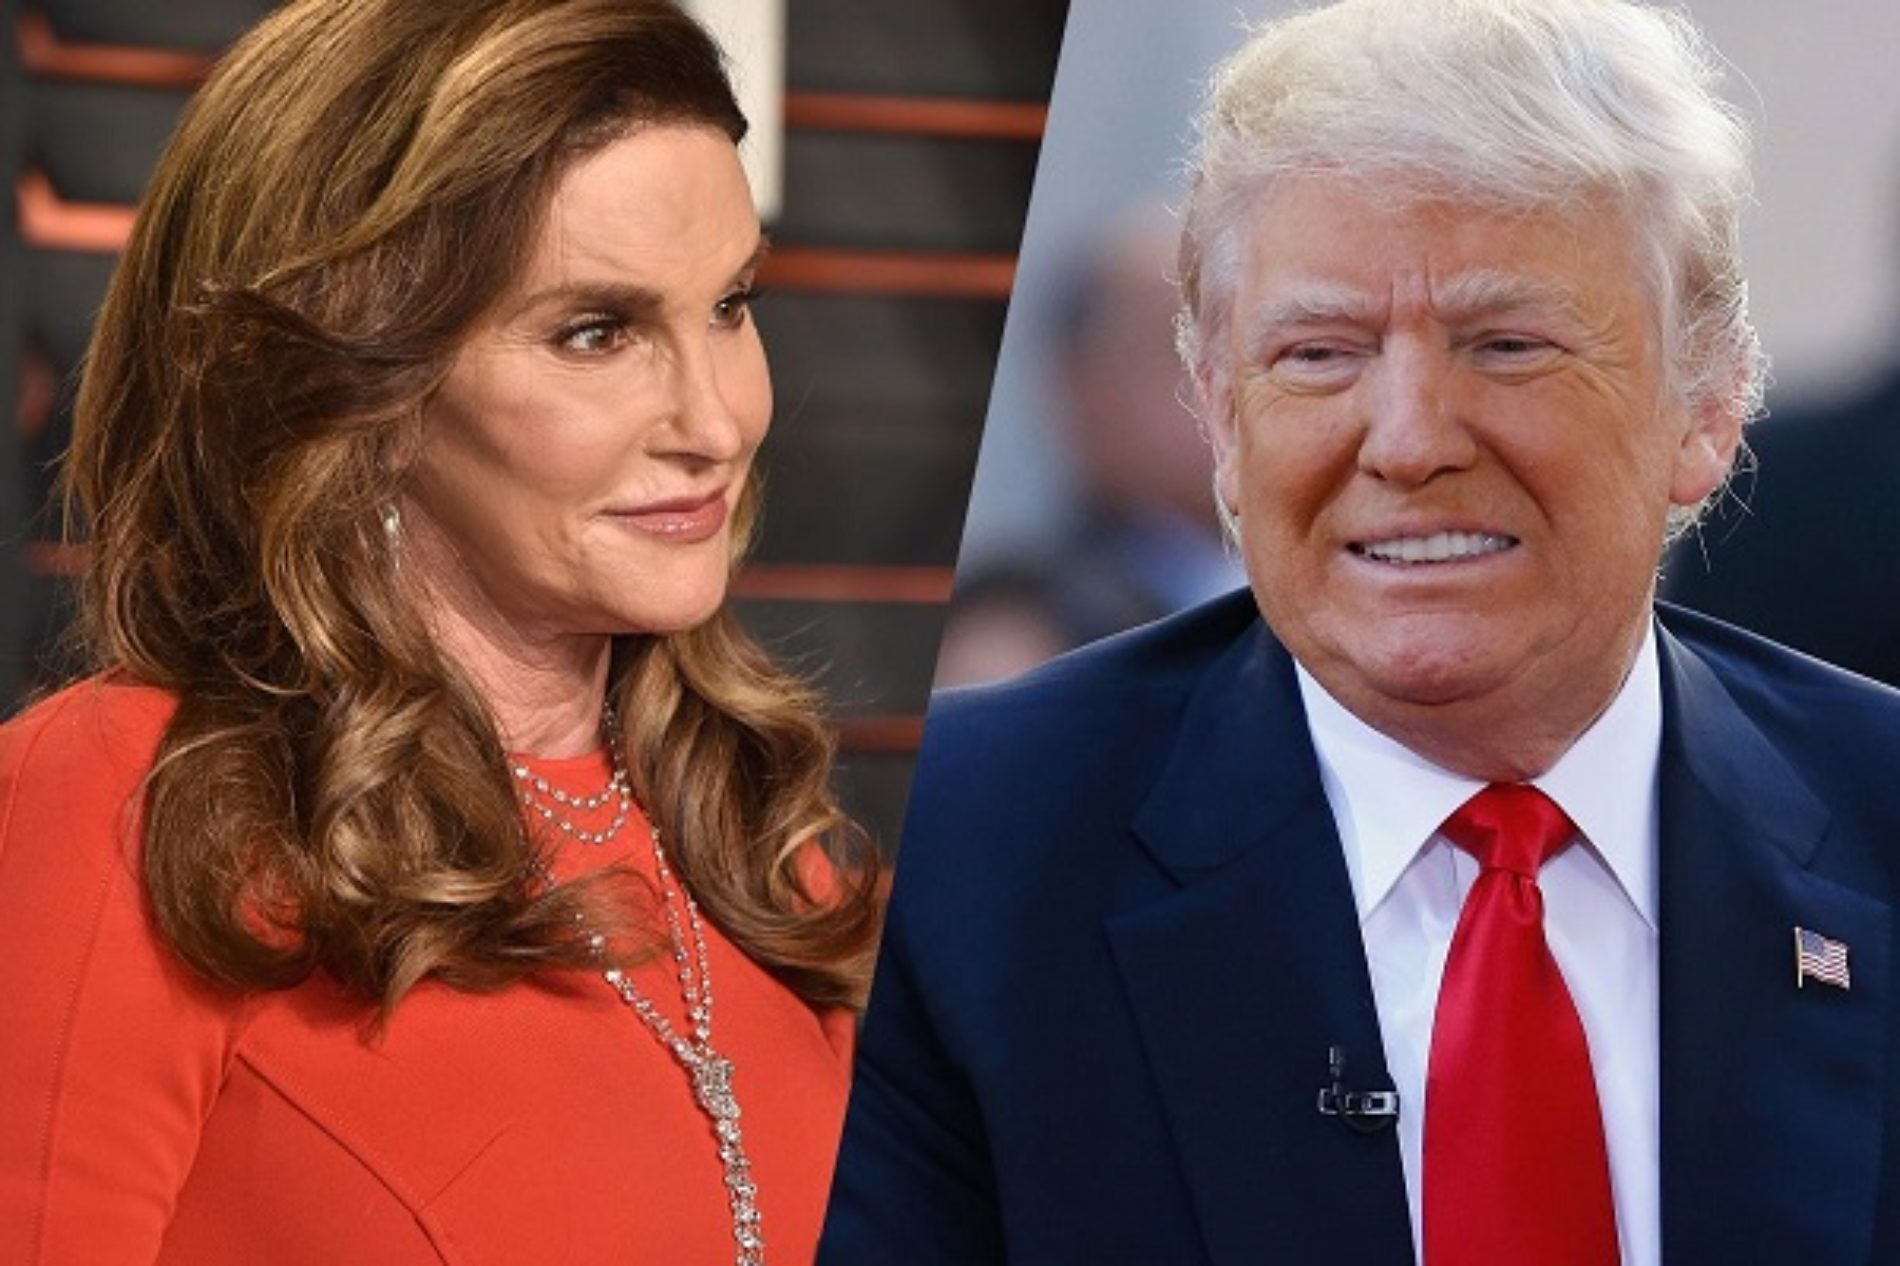 Twitter reacts to Caitlyn Jenner's outrage over Donald Trump's trans military ban